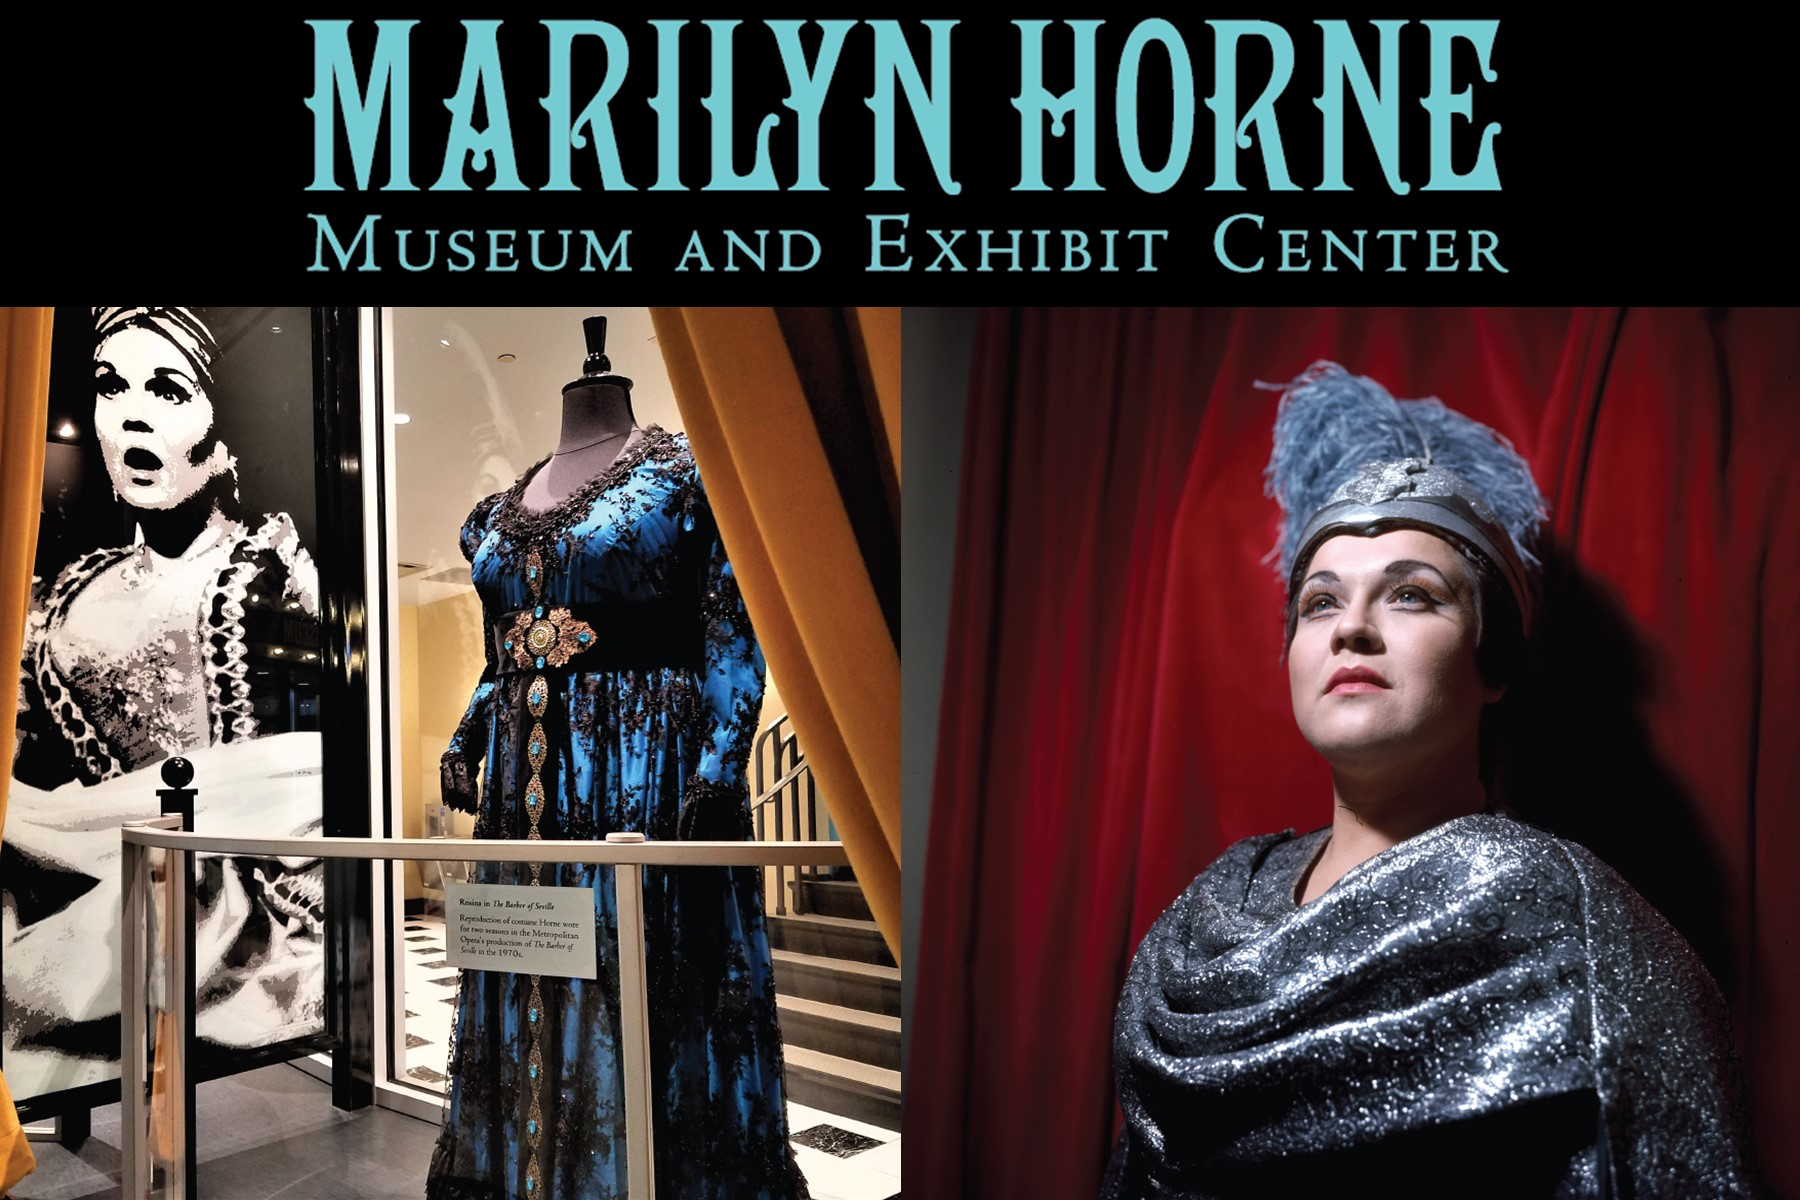 Marquis above Marilyn Horne museum